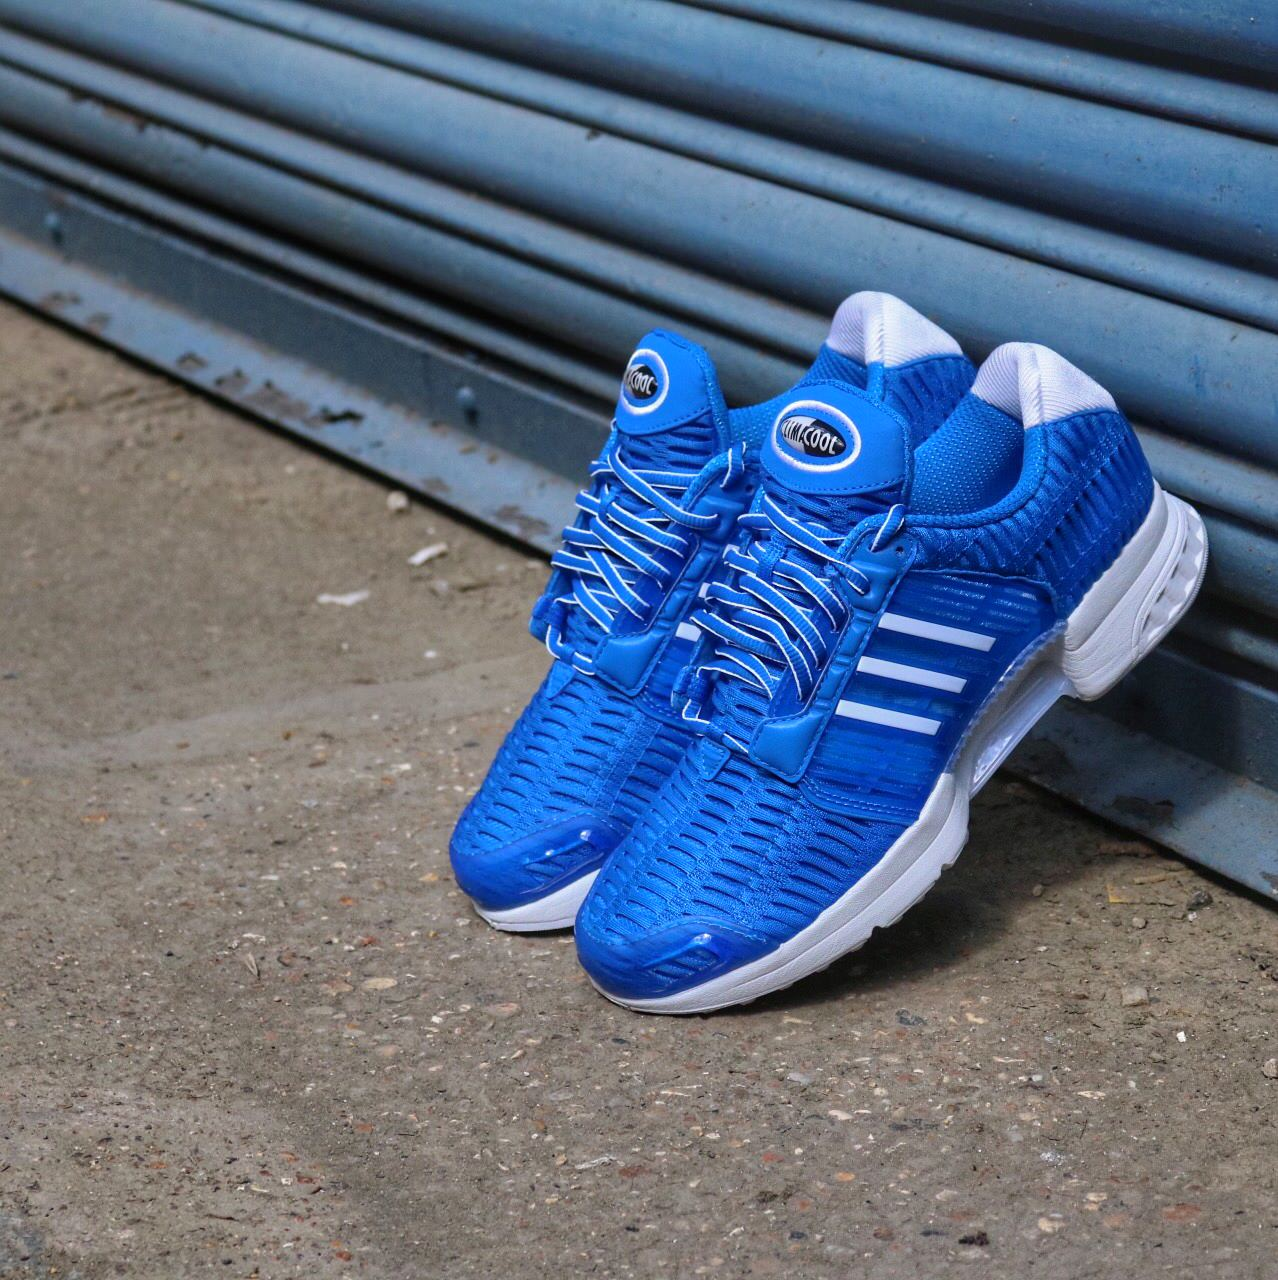 timeless design f6c1a a7a9a Adidas Climacool JD Sports Exclusive. - Visionarism